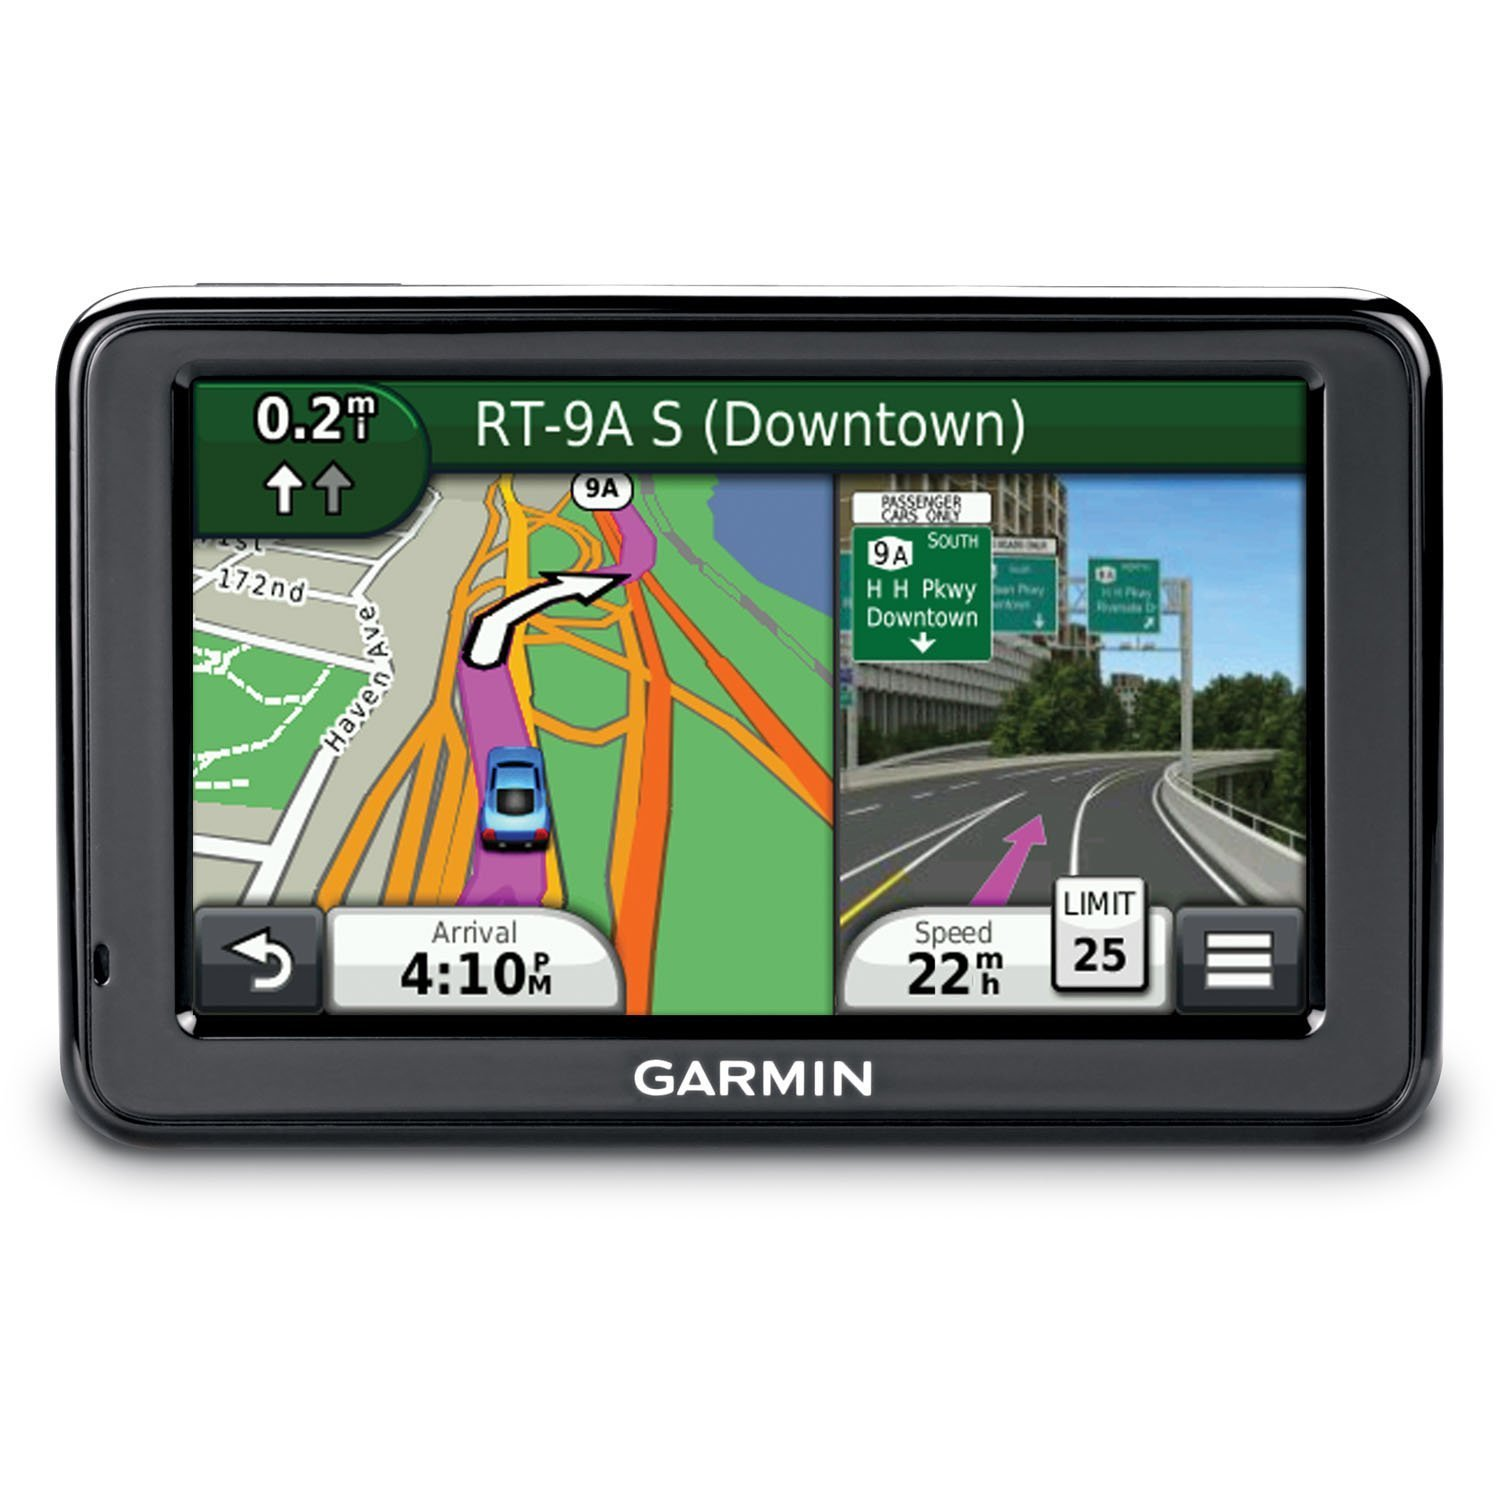 Garmin Portable Navigator Certified Refurbished Image 1